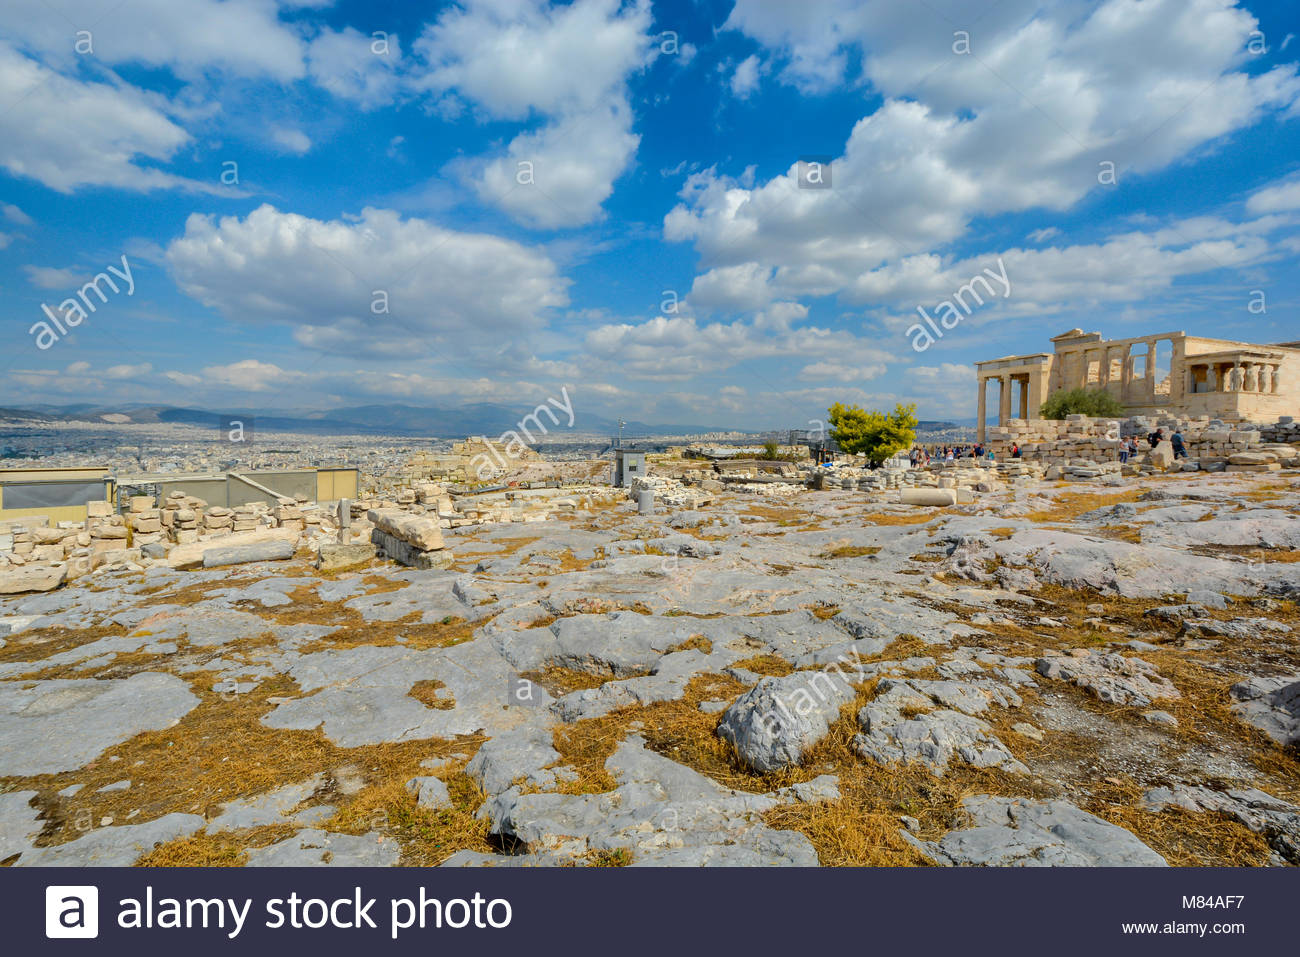 A warm summer day in Athens Greece as tourists enjoy the city view and explore the ancient Erechtheion on Acropolis - Stock Image